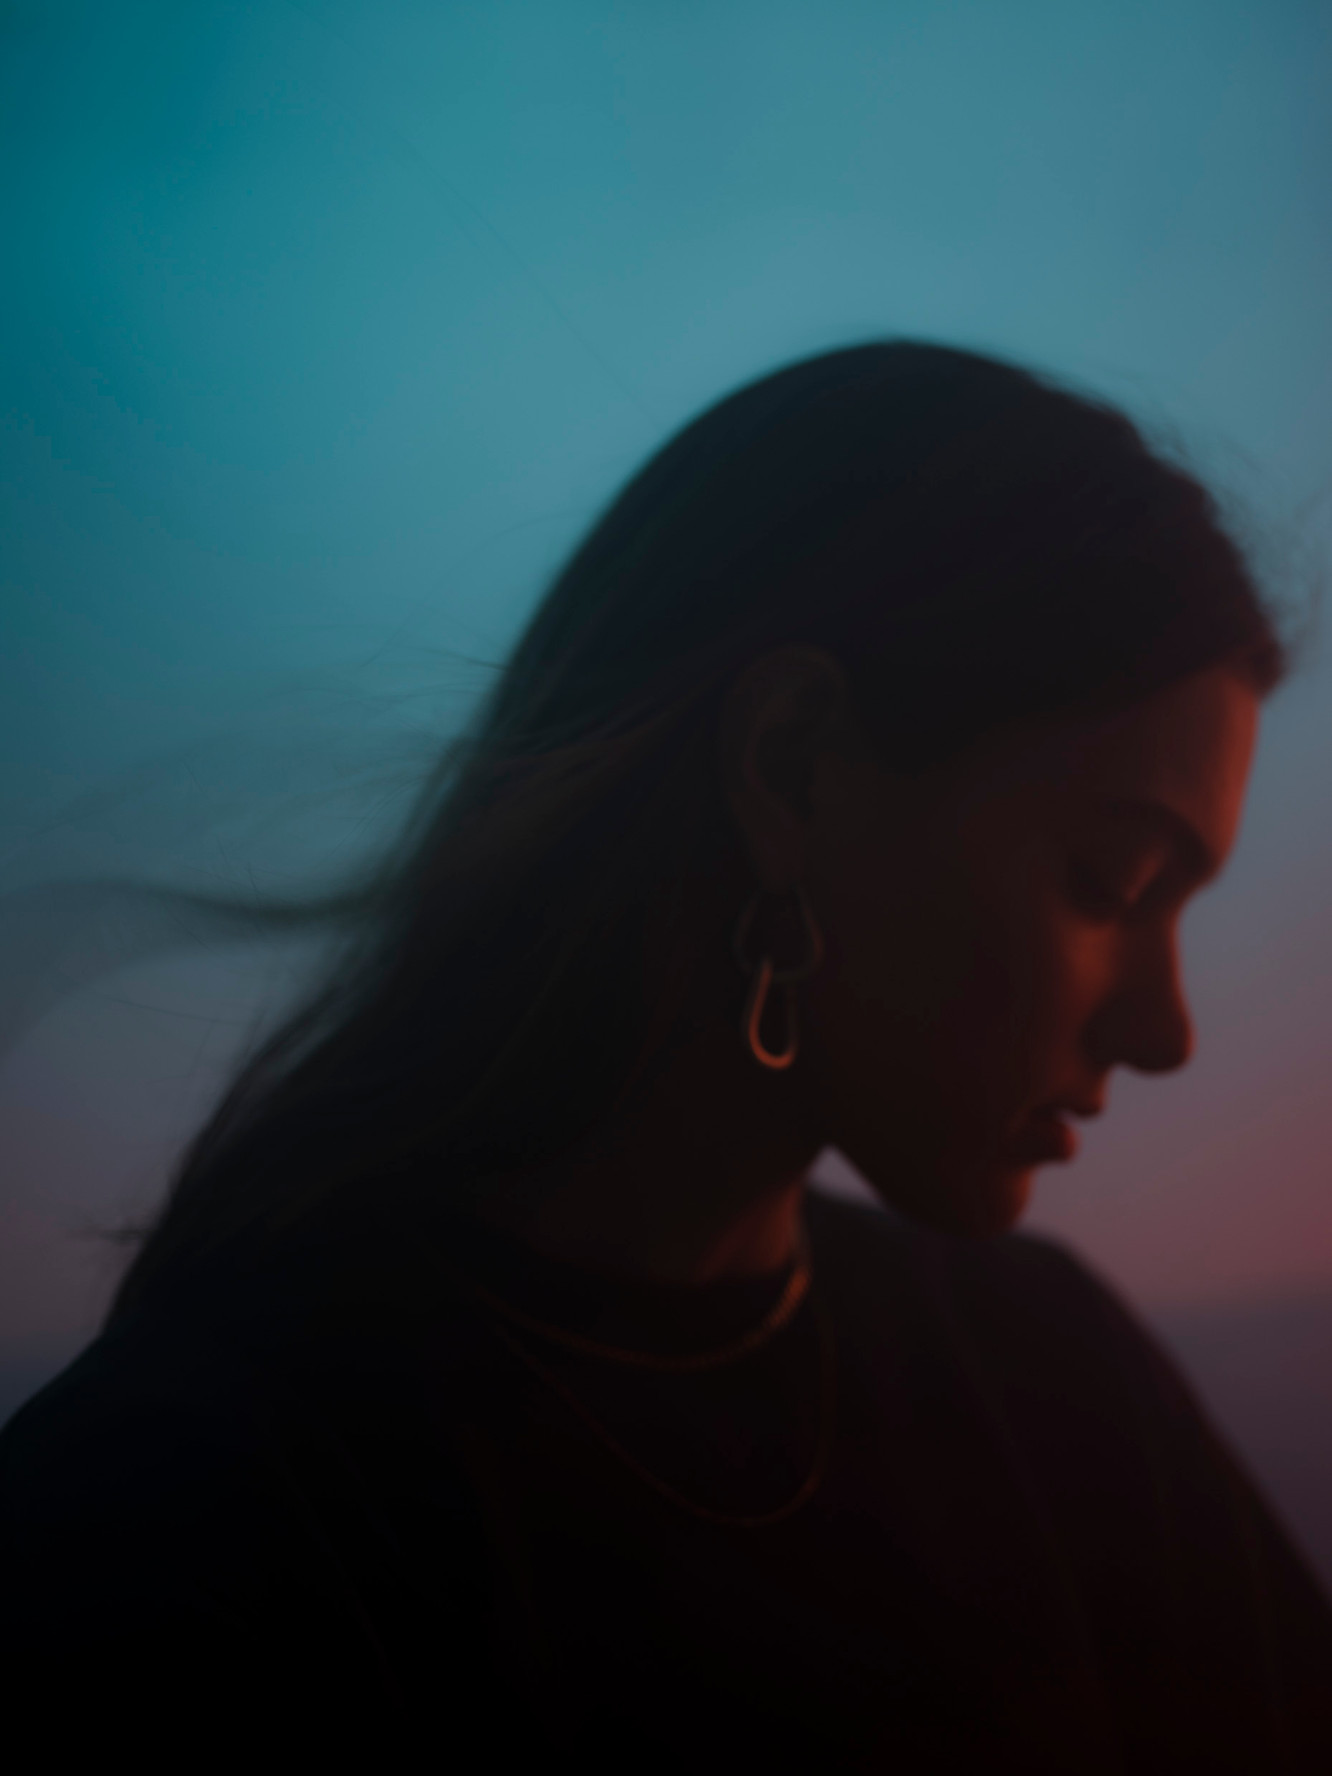 Charlotte Cardin Finally Announces Her First Album After Many Years Waiting